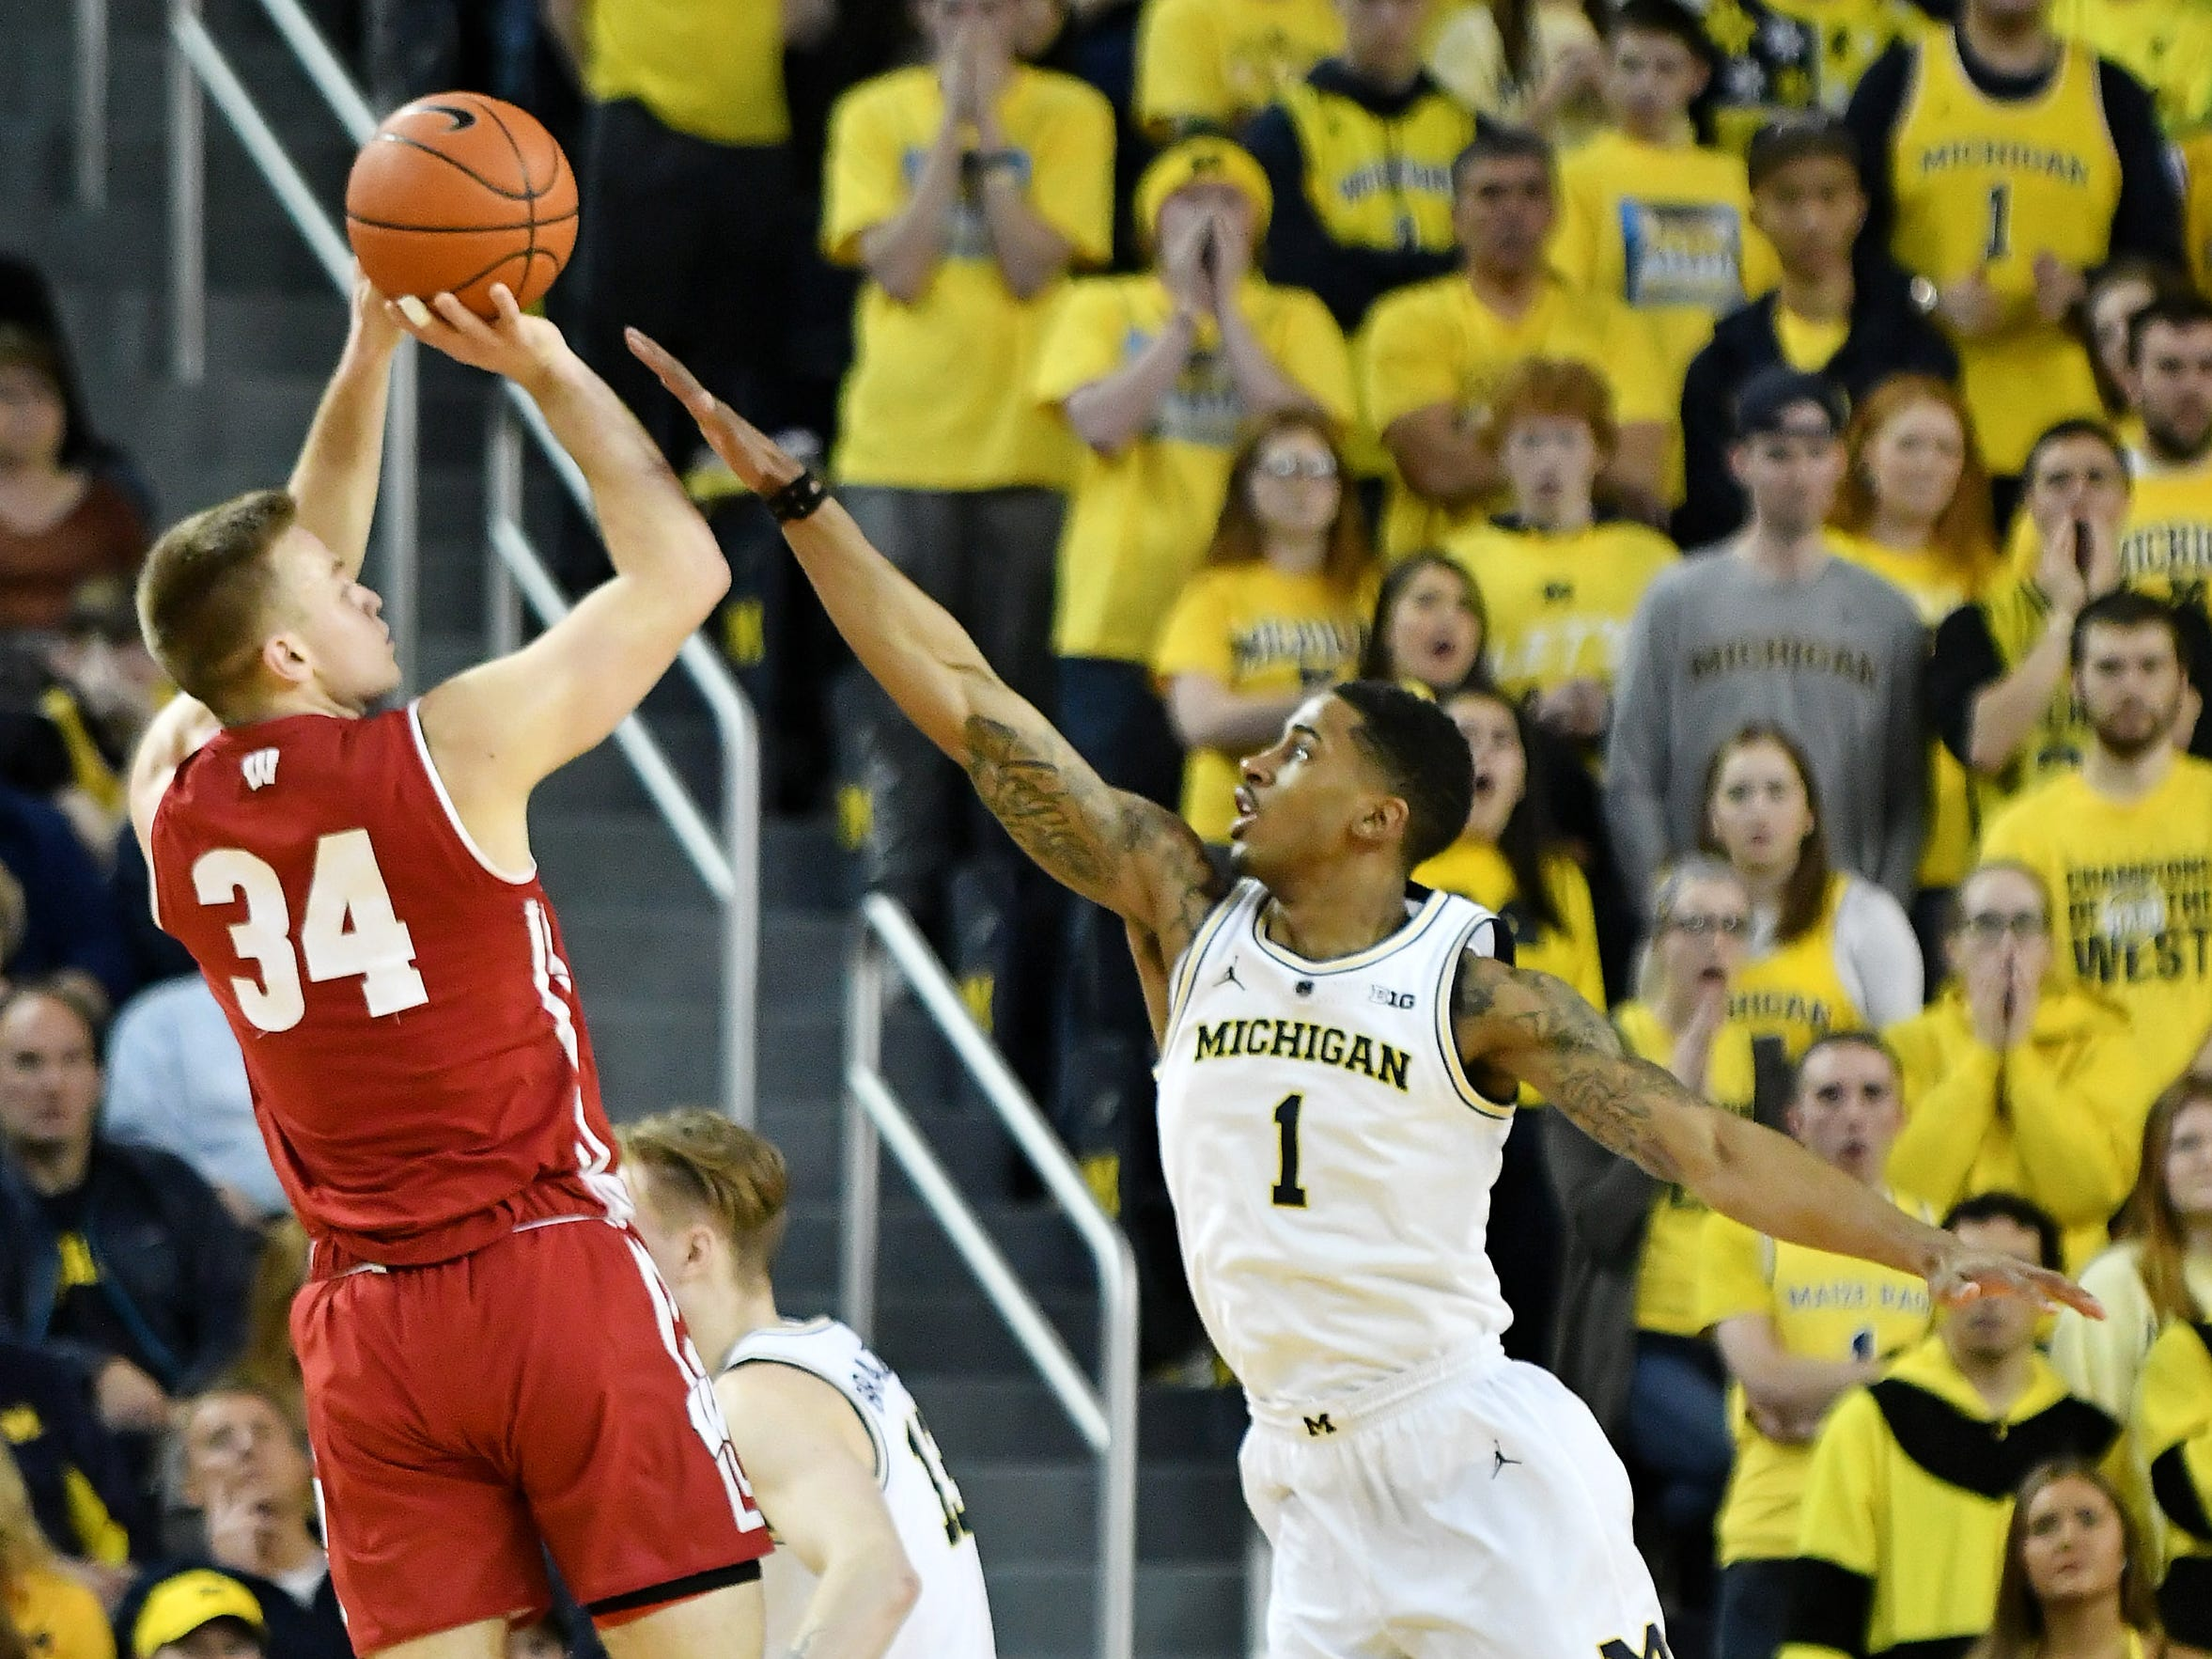 Michigan guard Charles Matthews (1) defends a shot by Wisconsin guard Brad Davison (34) in the second half.